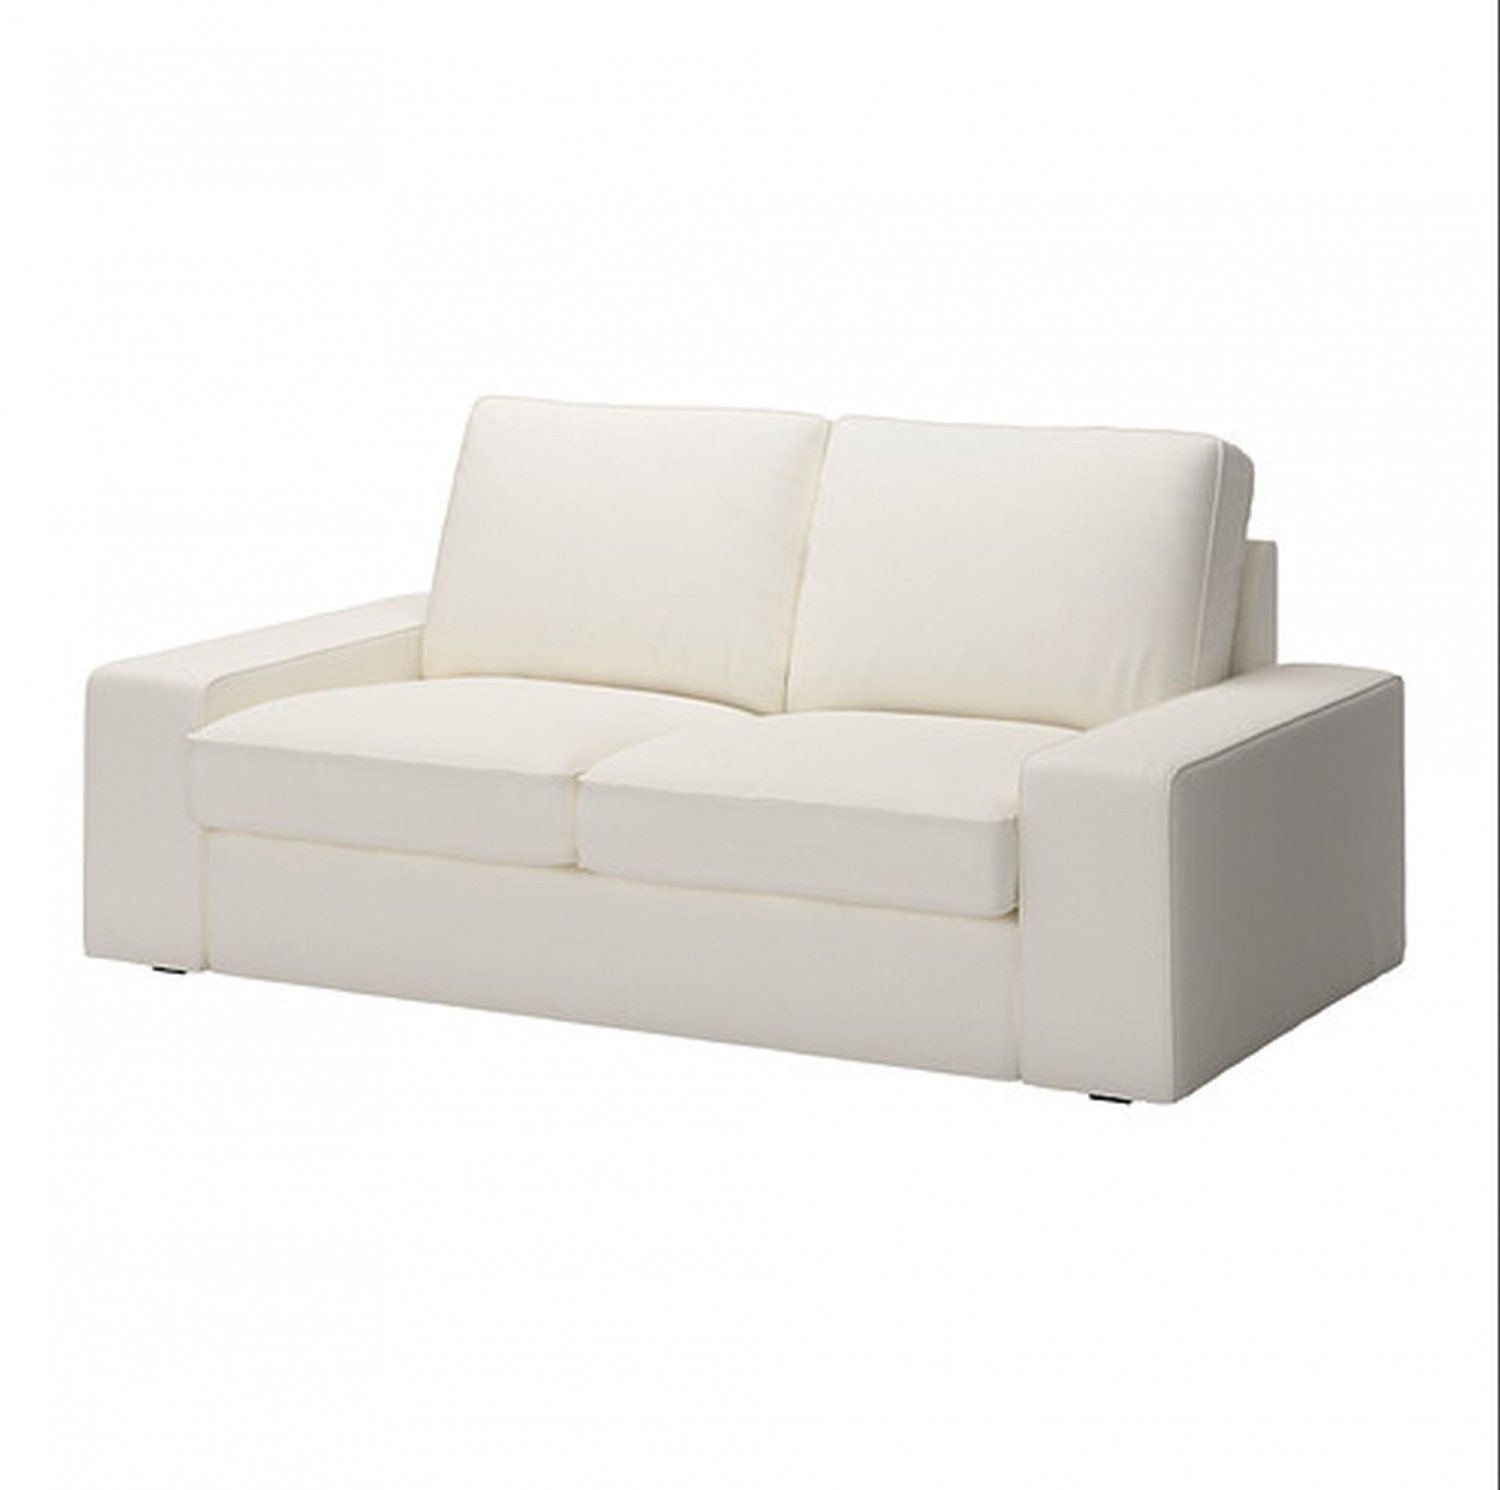 Ikea kivik 2 seat sofa slipcover loveseat cover dansbo white White loveseat slipcovers